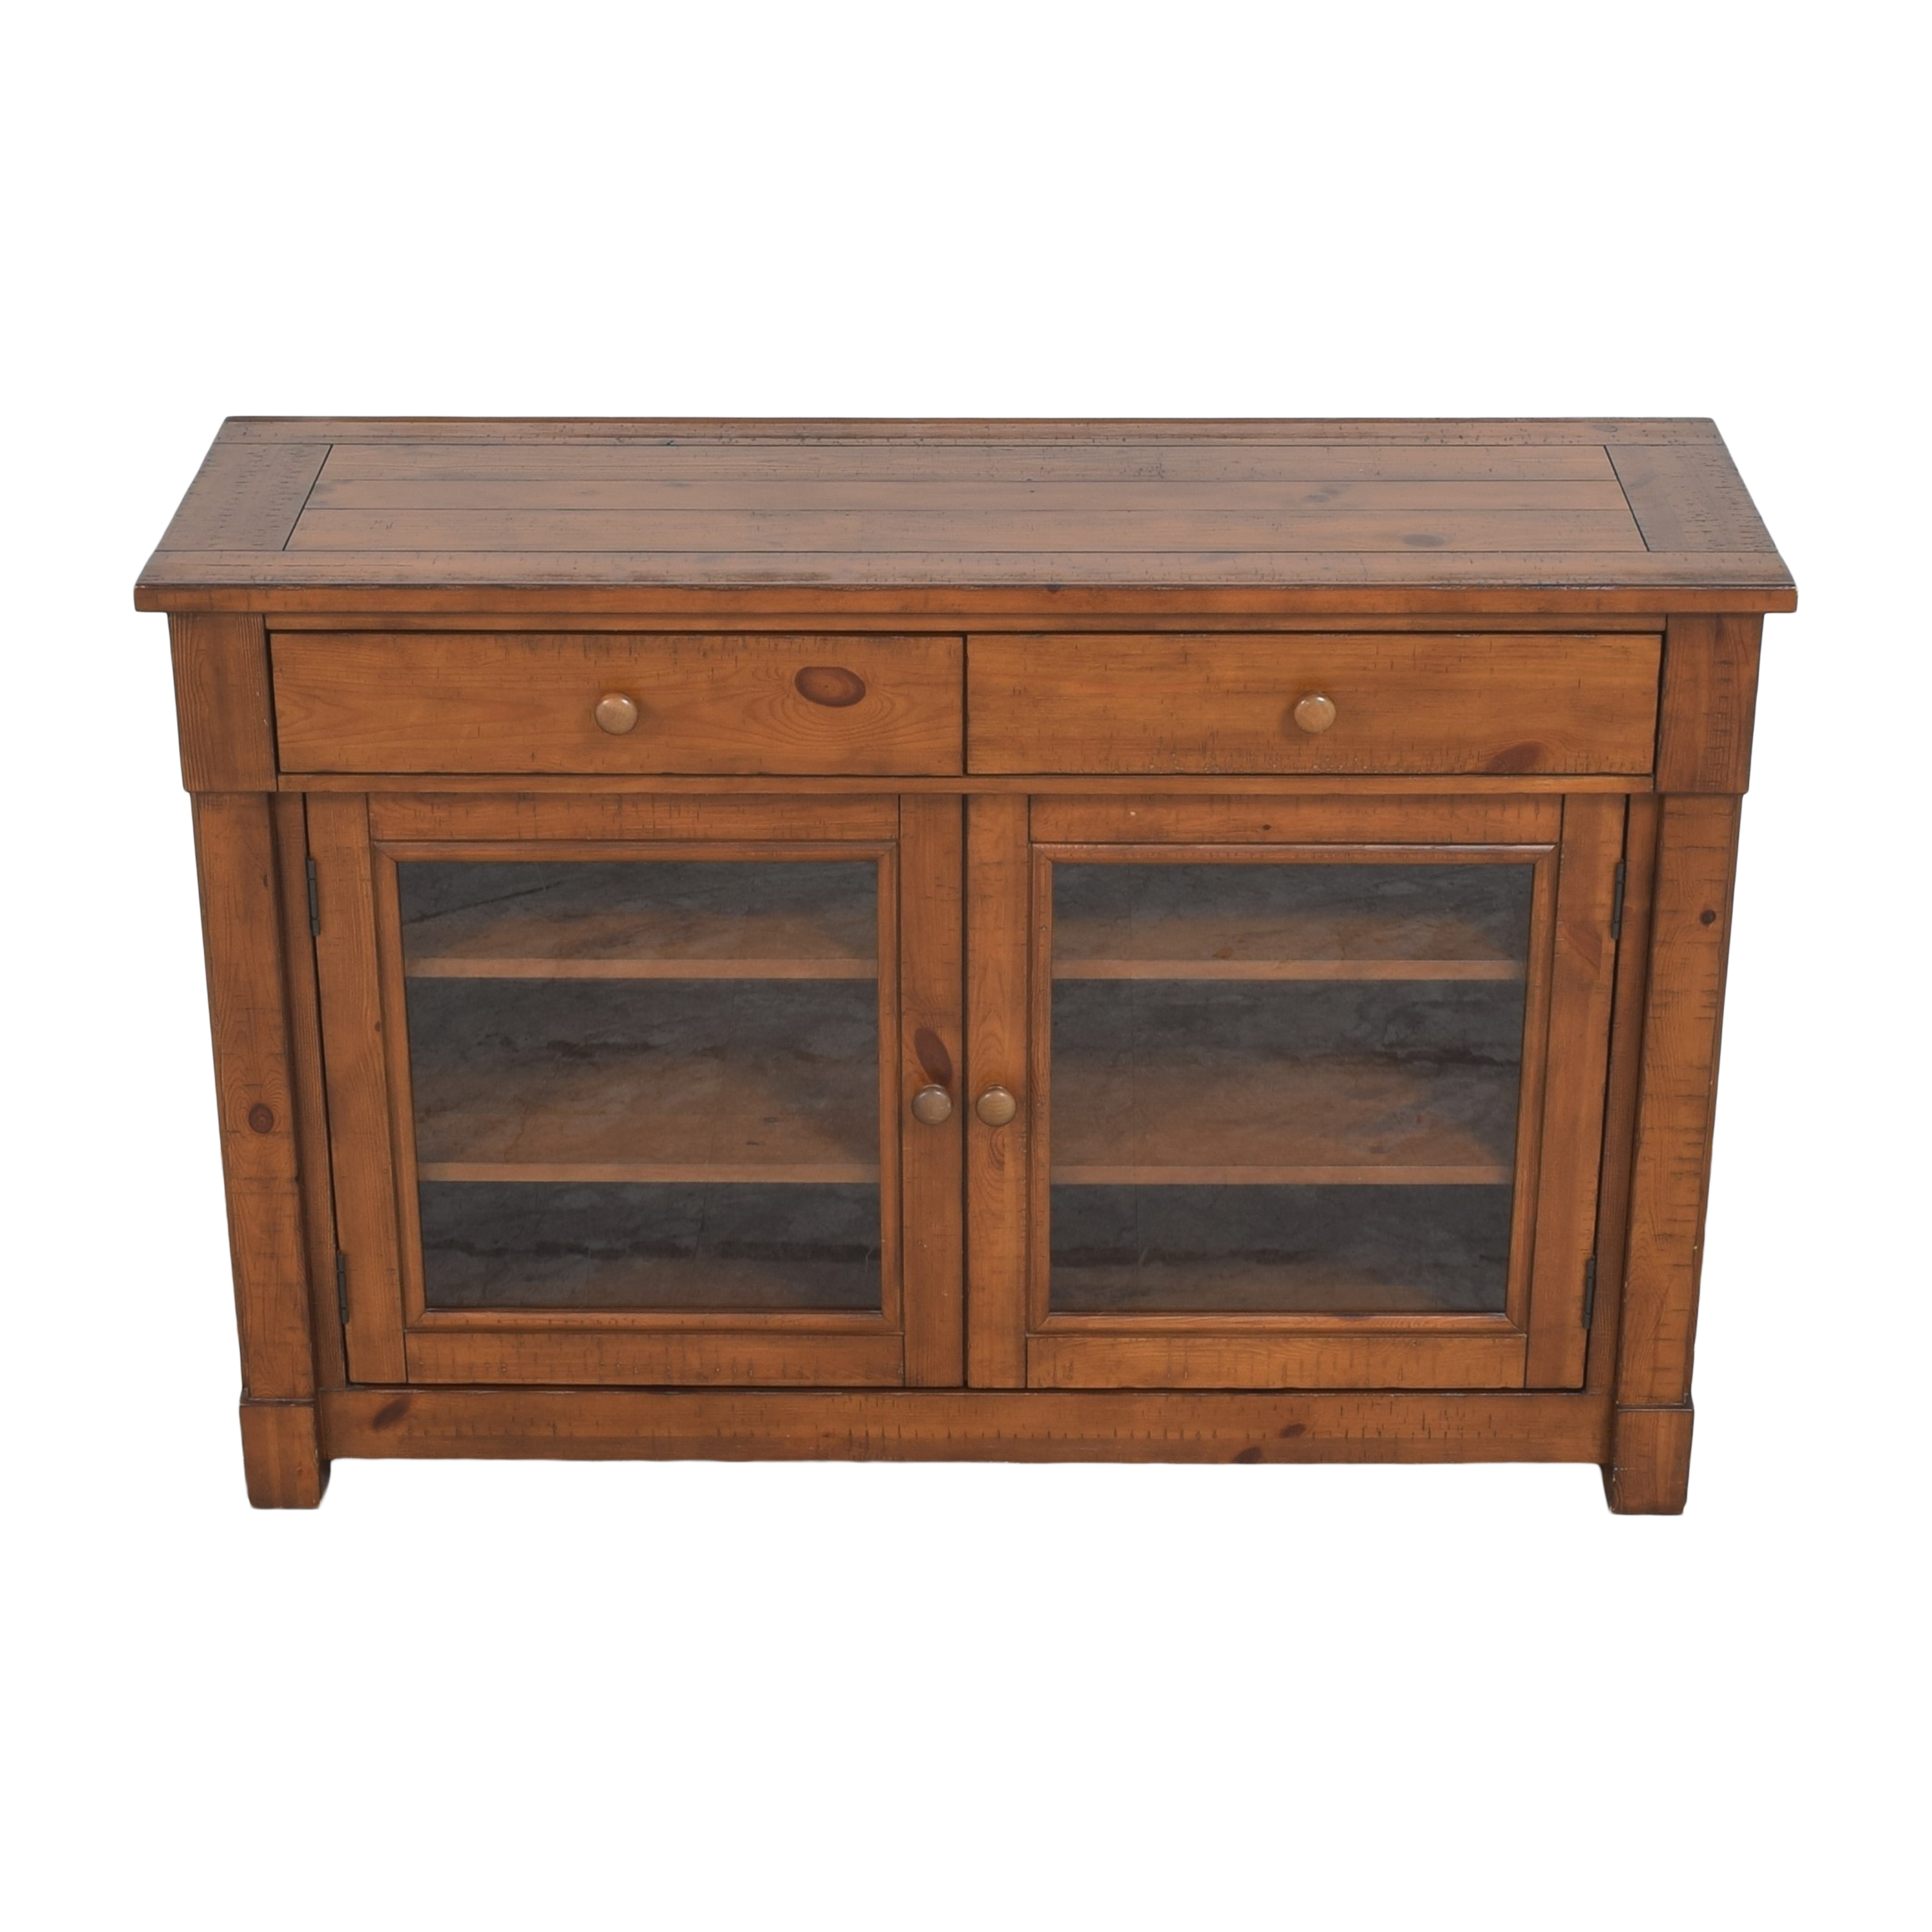 shop Pottery Barn Buffet Sideboard Pottery Barn Cabinets & Sideboards